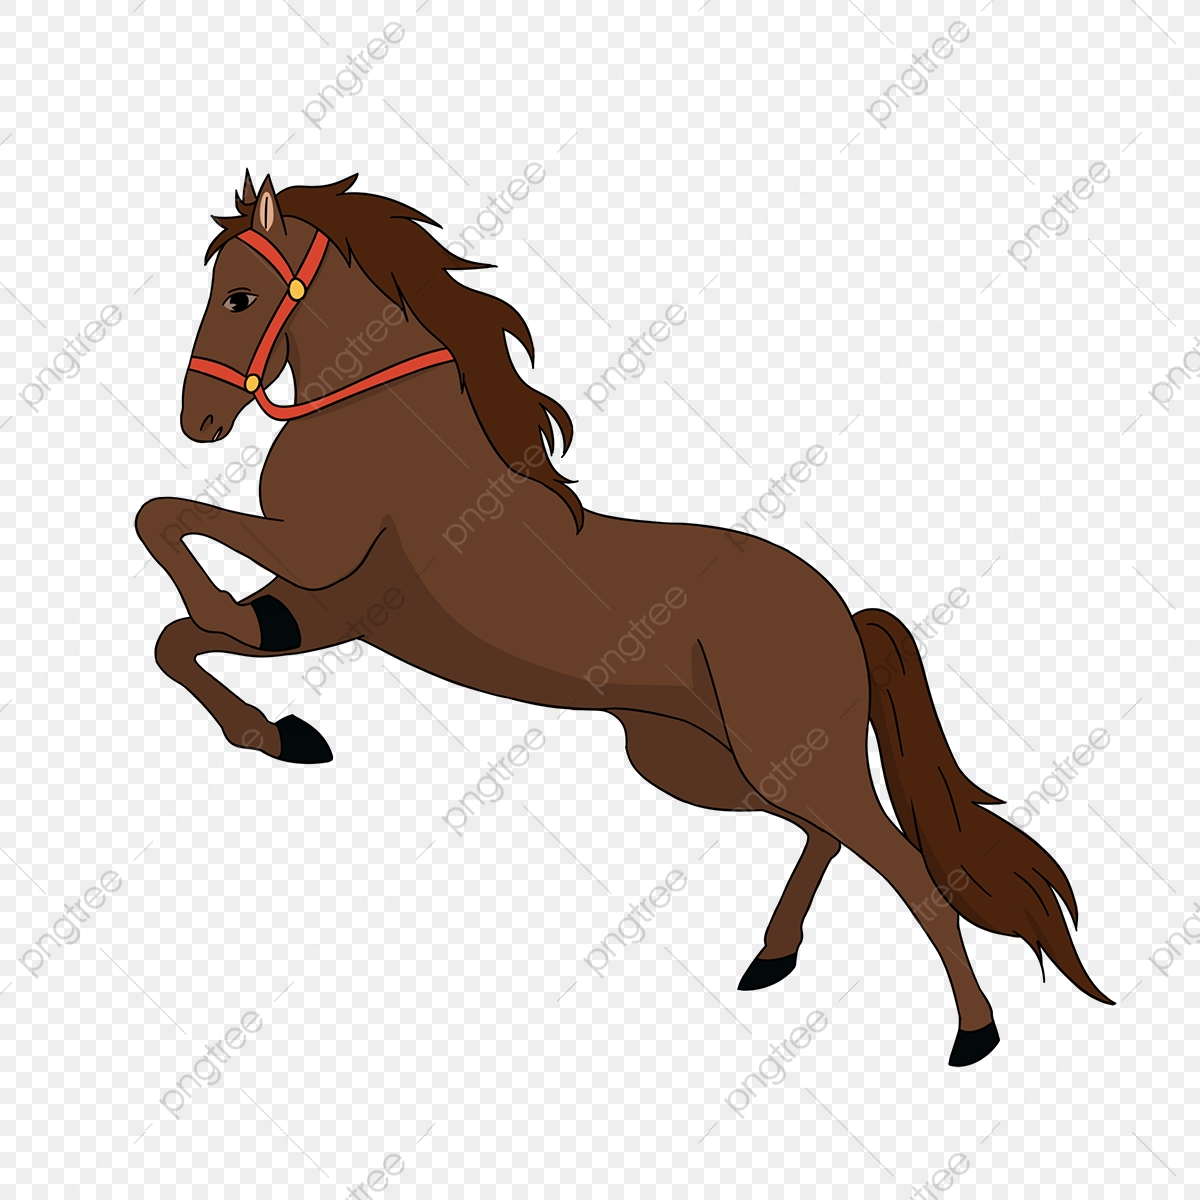 Jumping Horse Clipart Horse Clipart Jump Animal Png Transparent Clipart Image And Psd File For Free Download